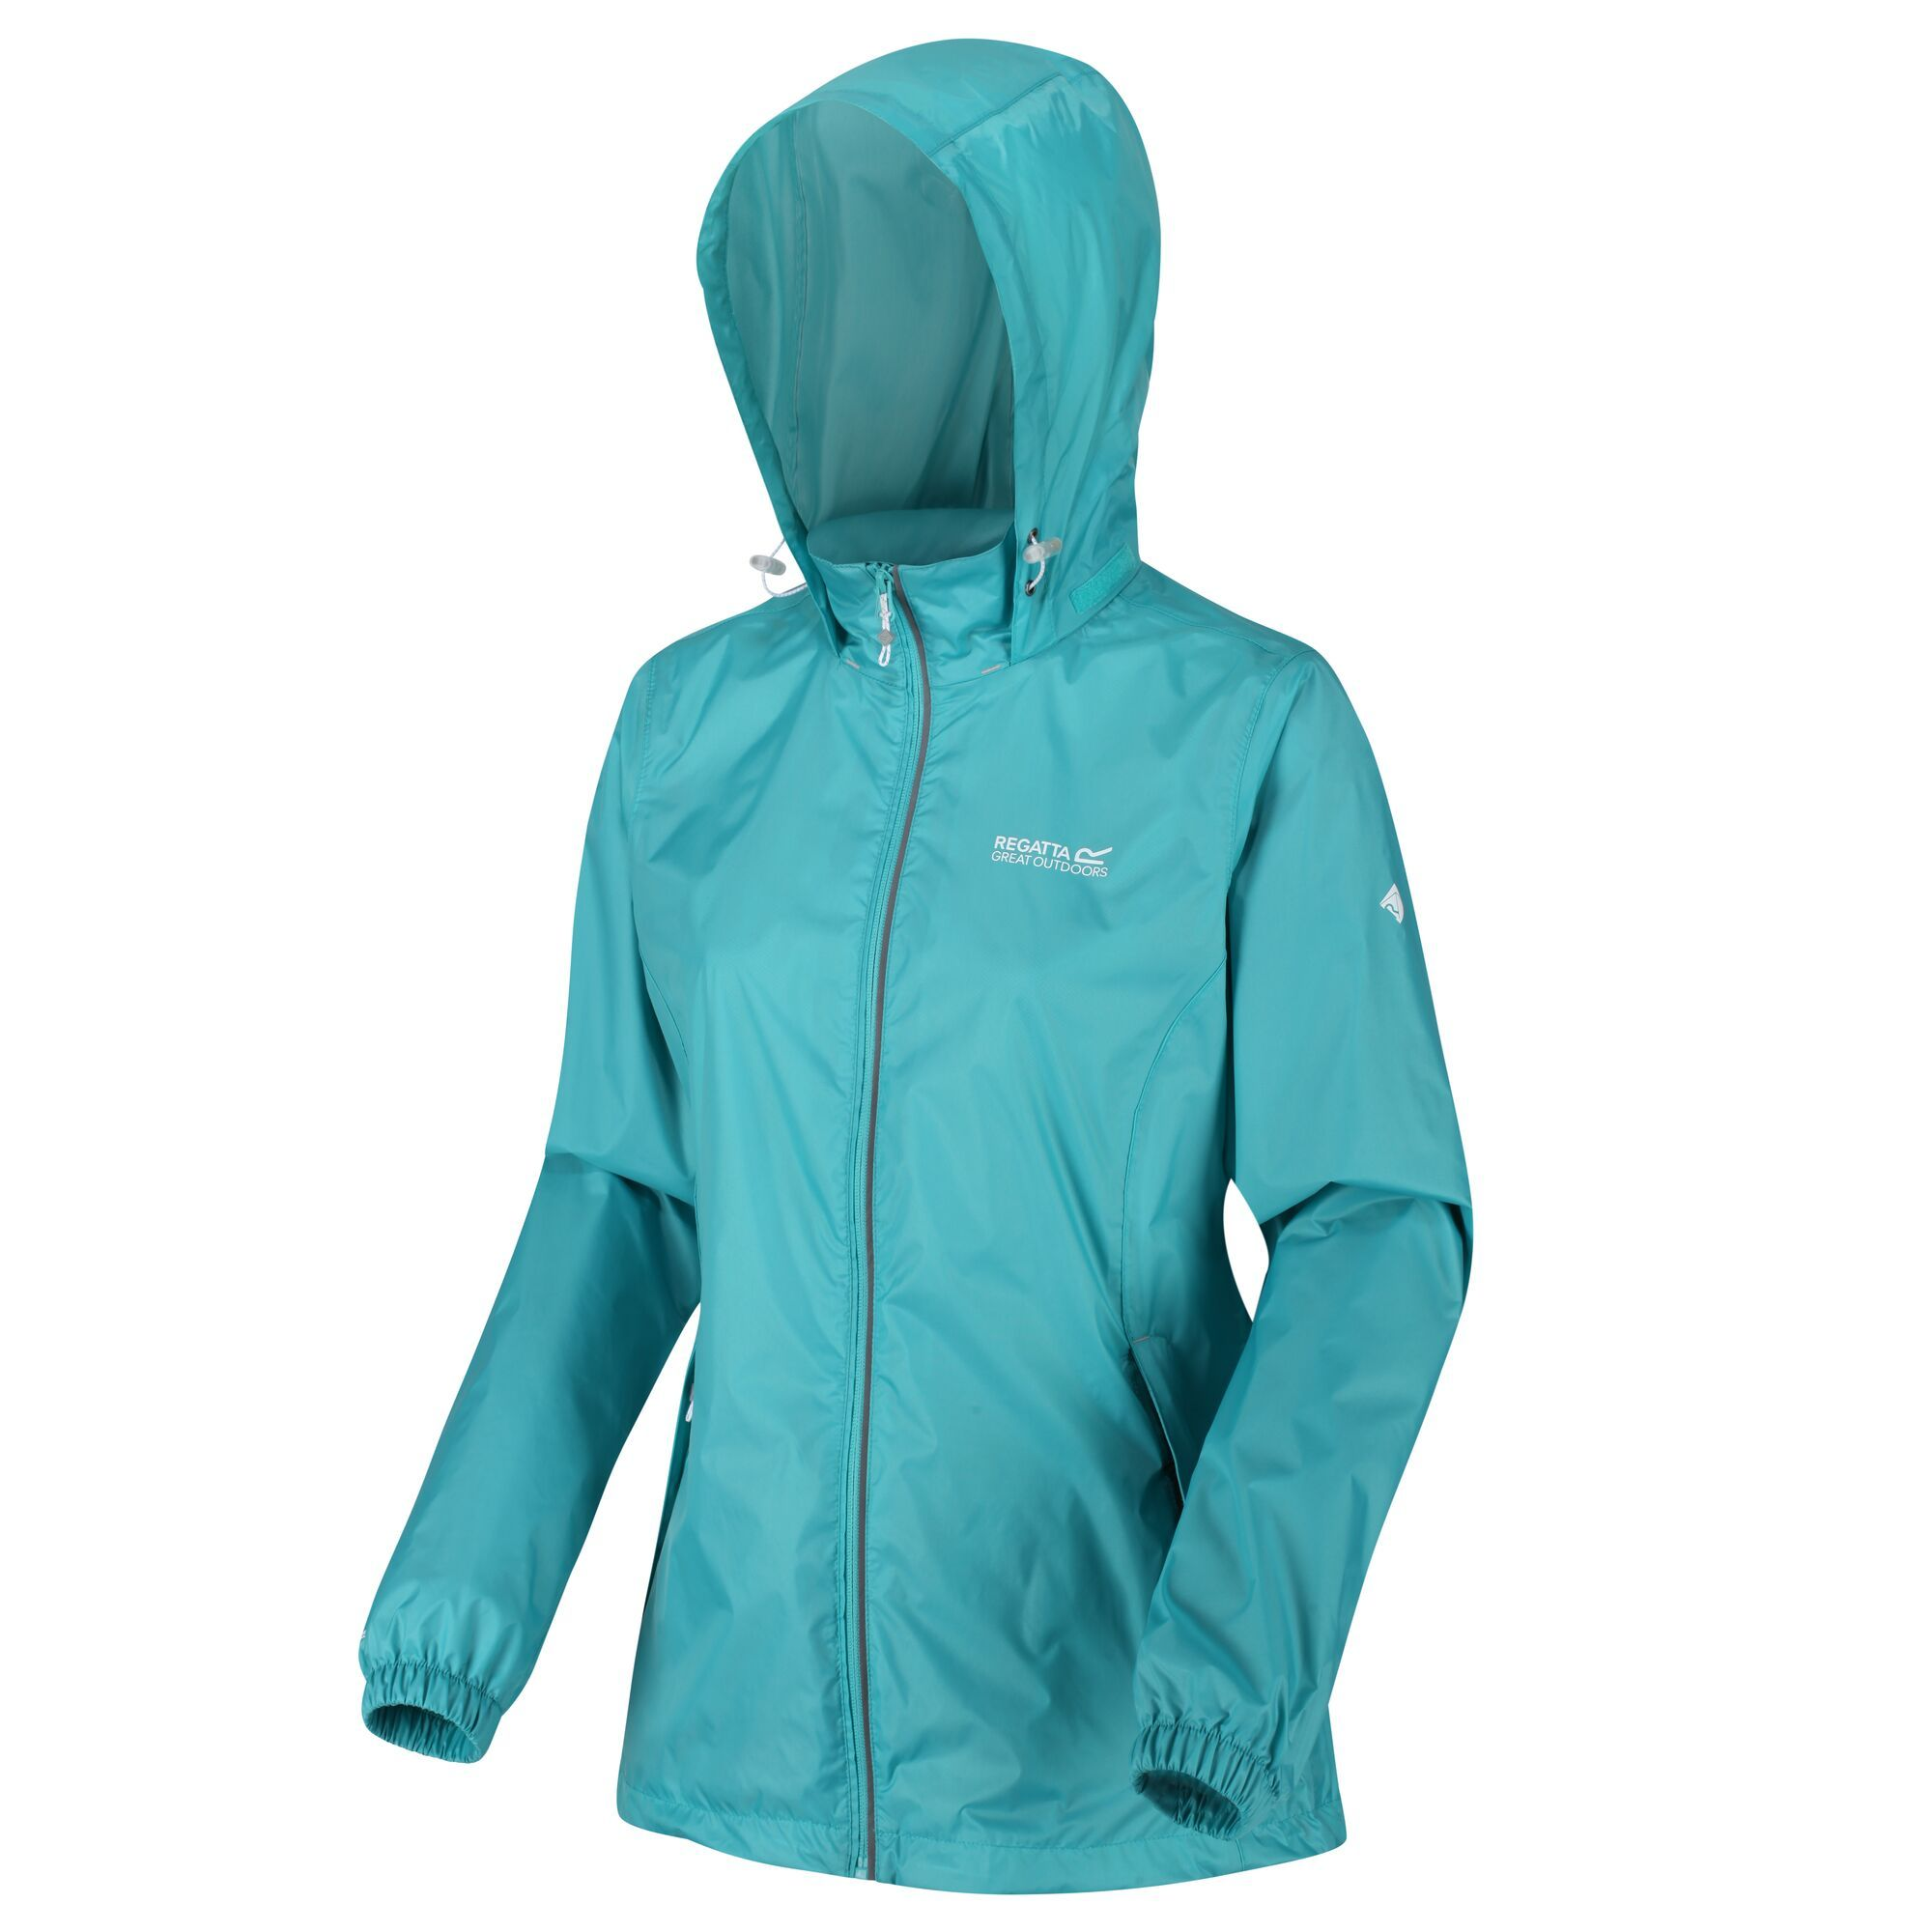 Regatta Womens/Ladies Corinne IV Waterproof Softshell Jacket